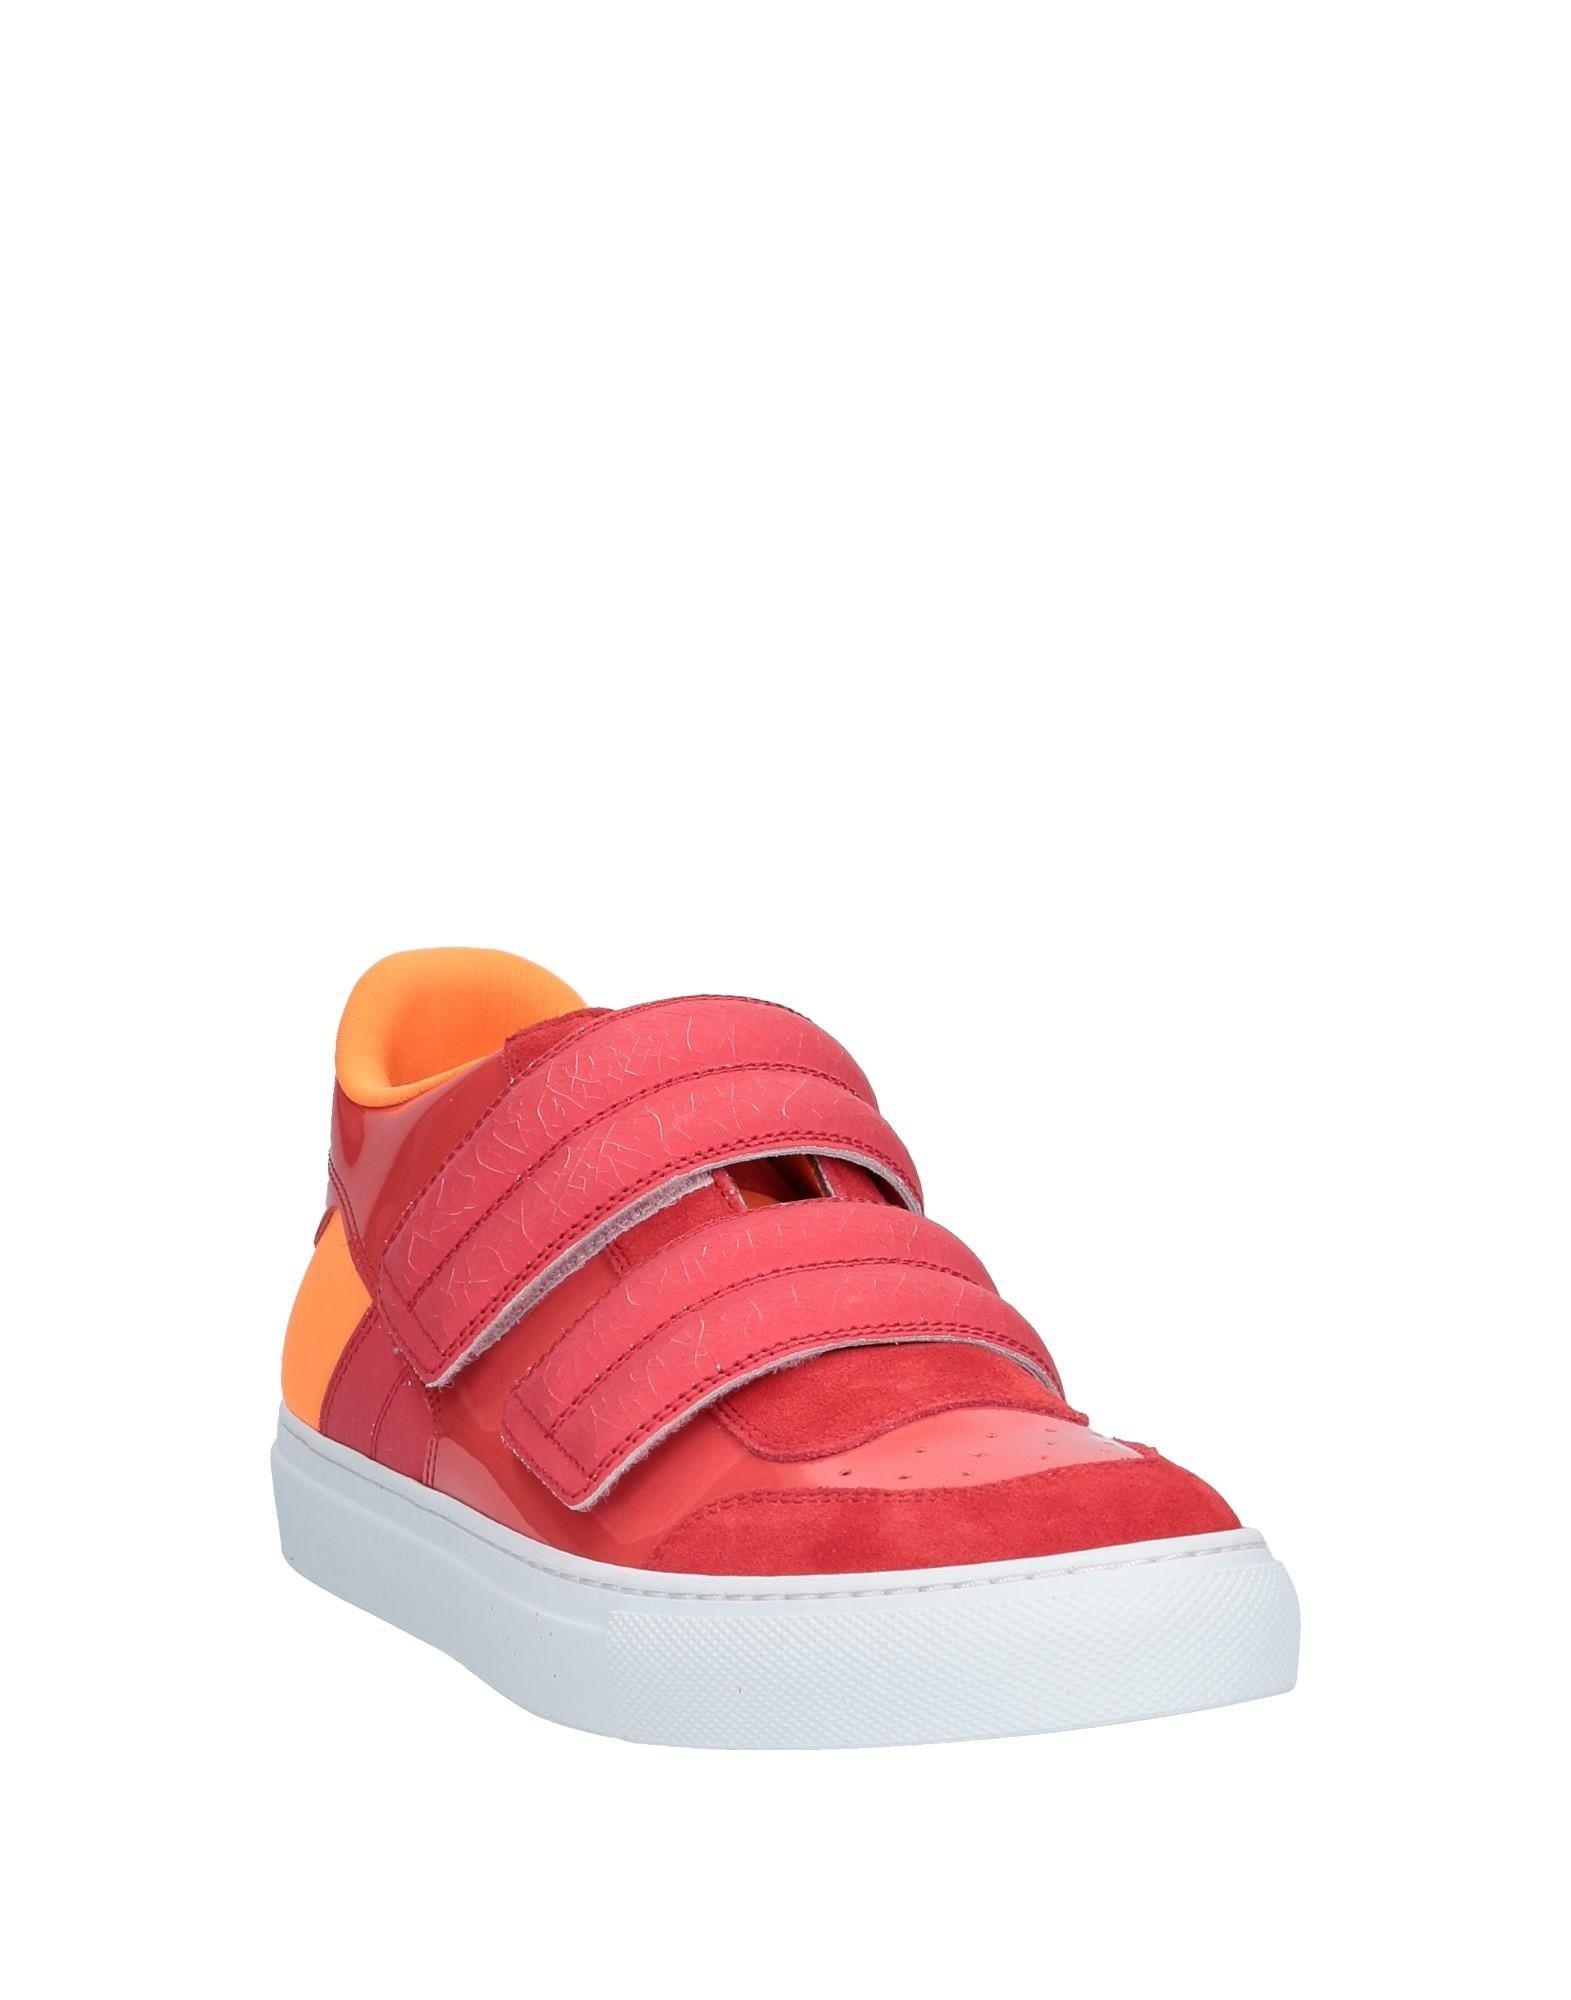 Sneakers & Deportivas MM6 by Maison Martin Margiela de color Rojo